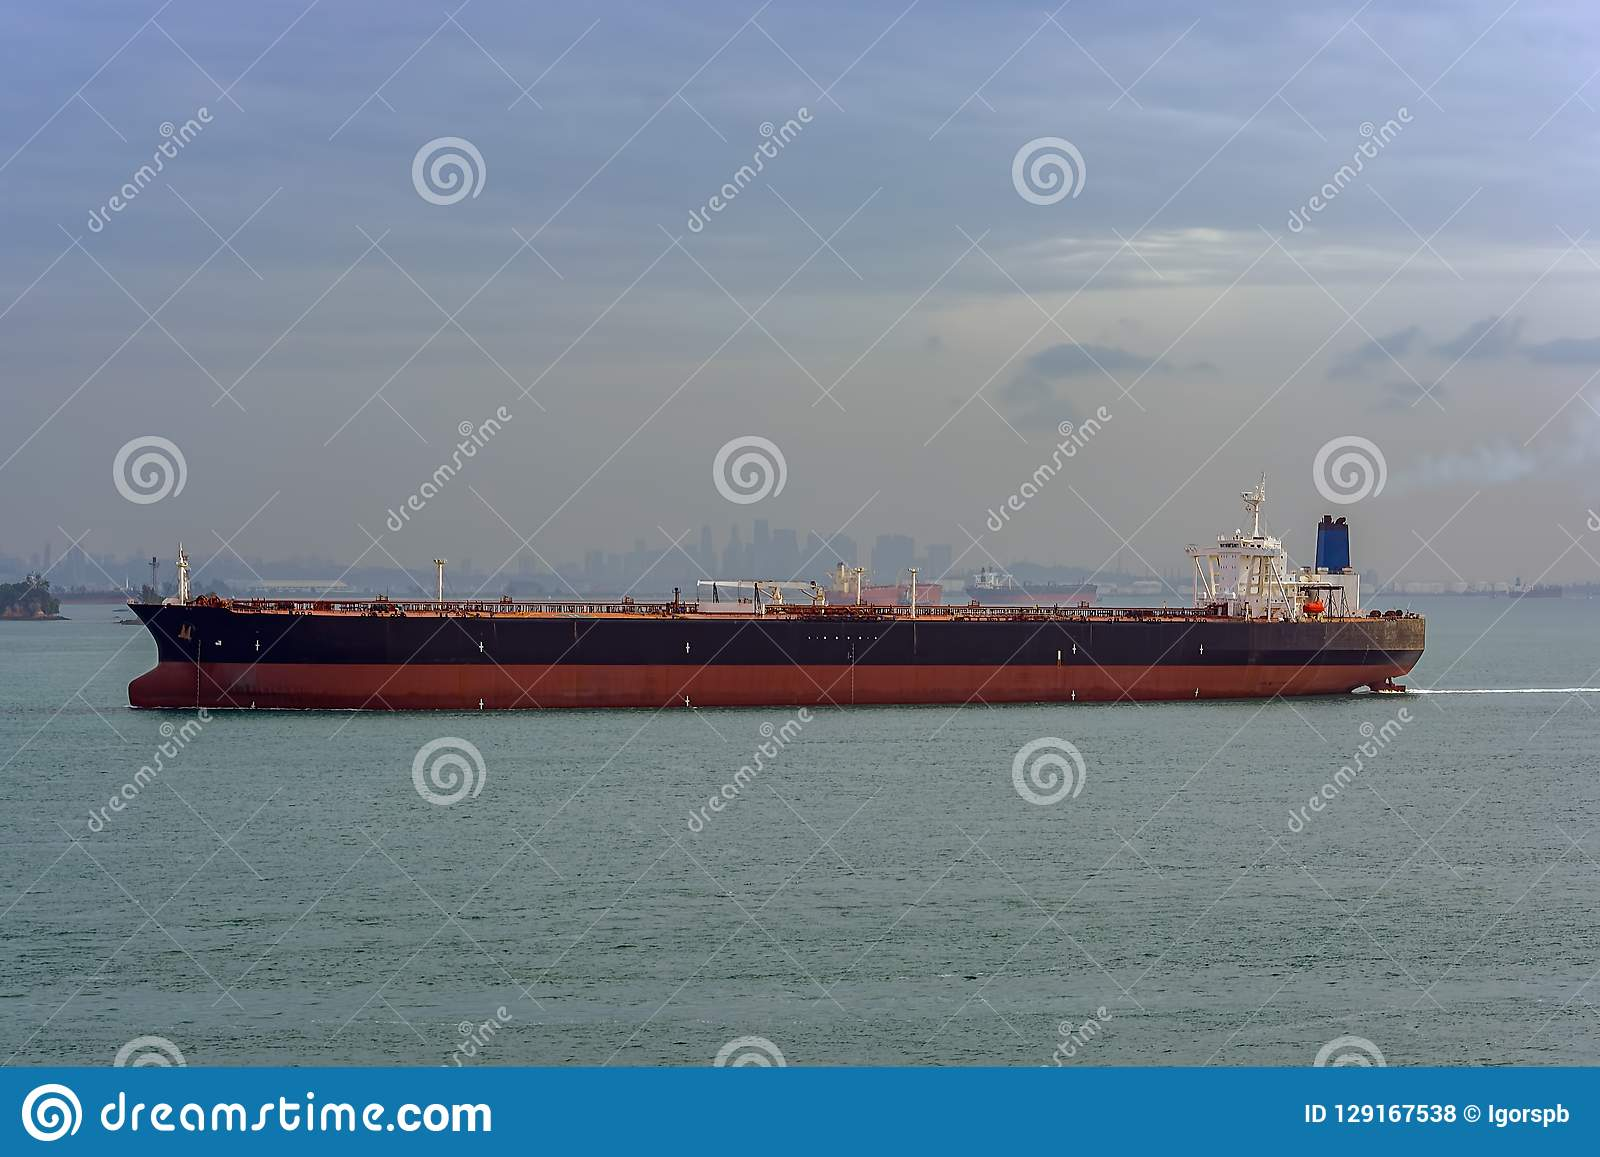 Oil Supertanker In Singapore Strait Stock Photo - Image of